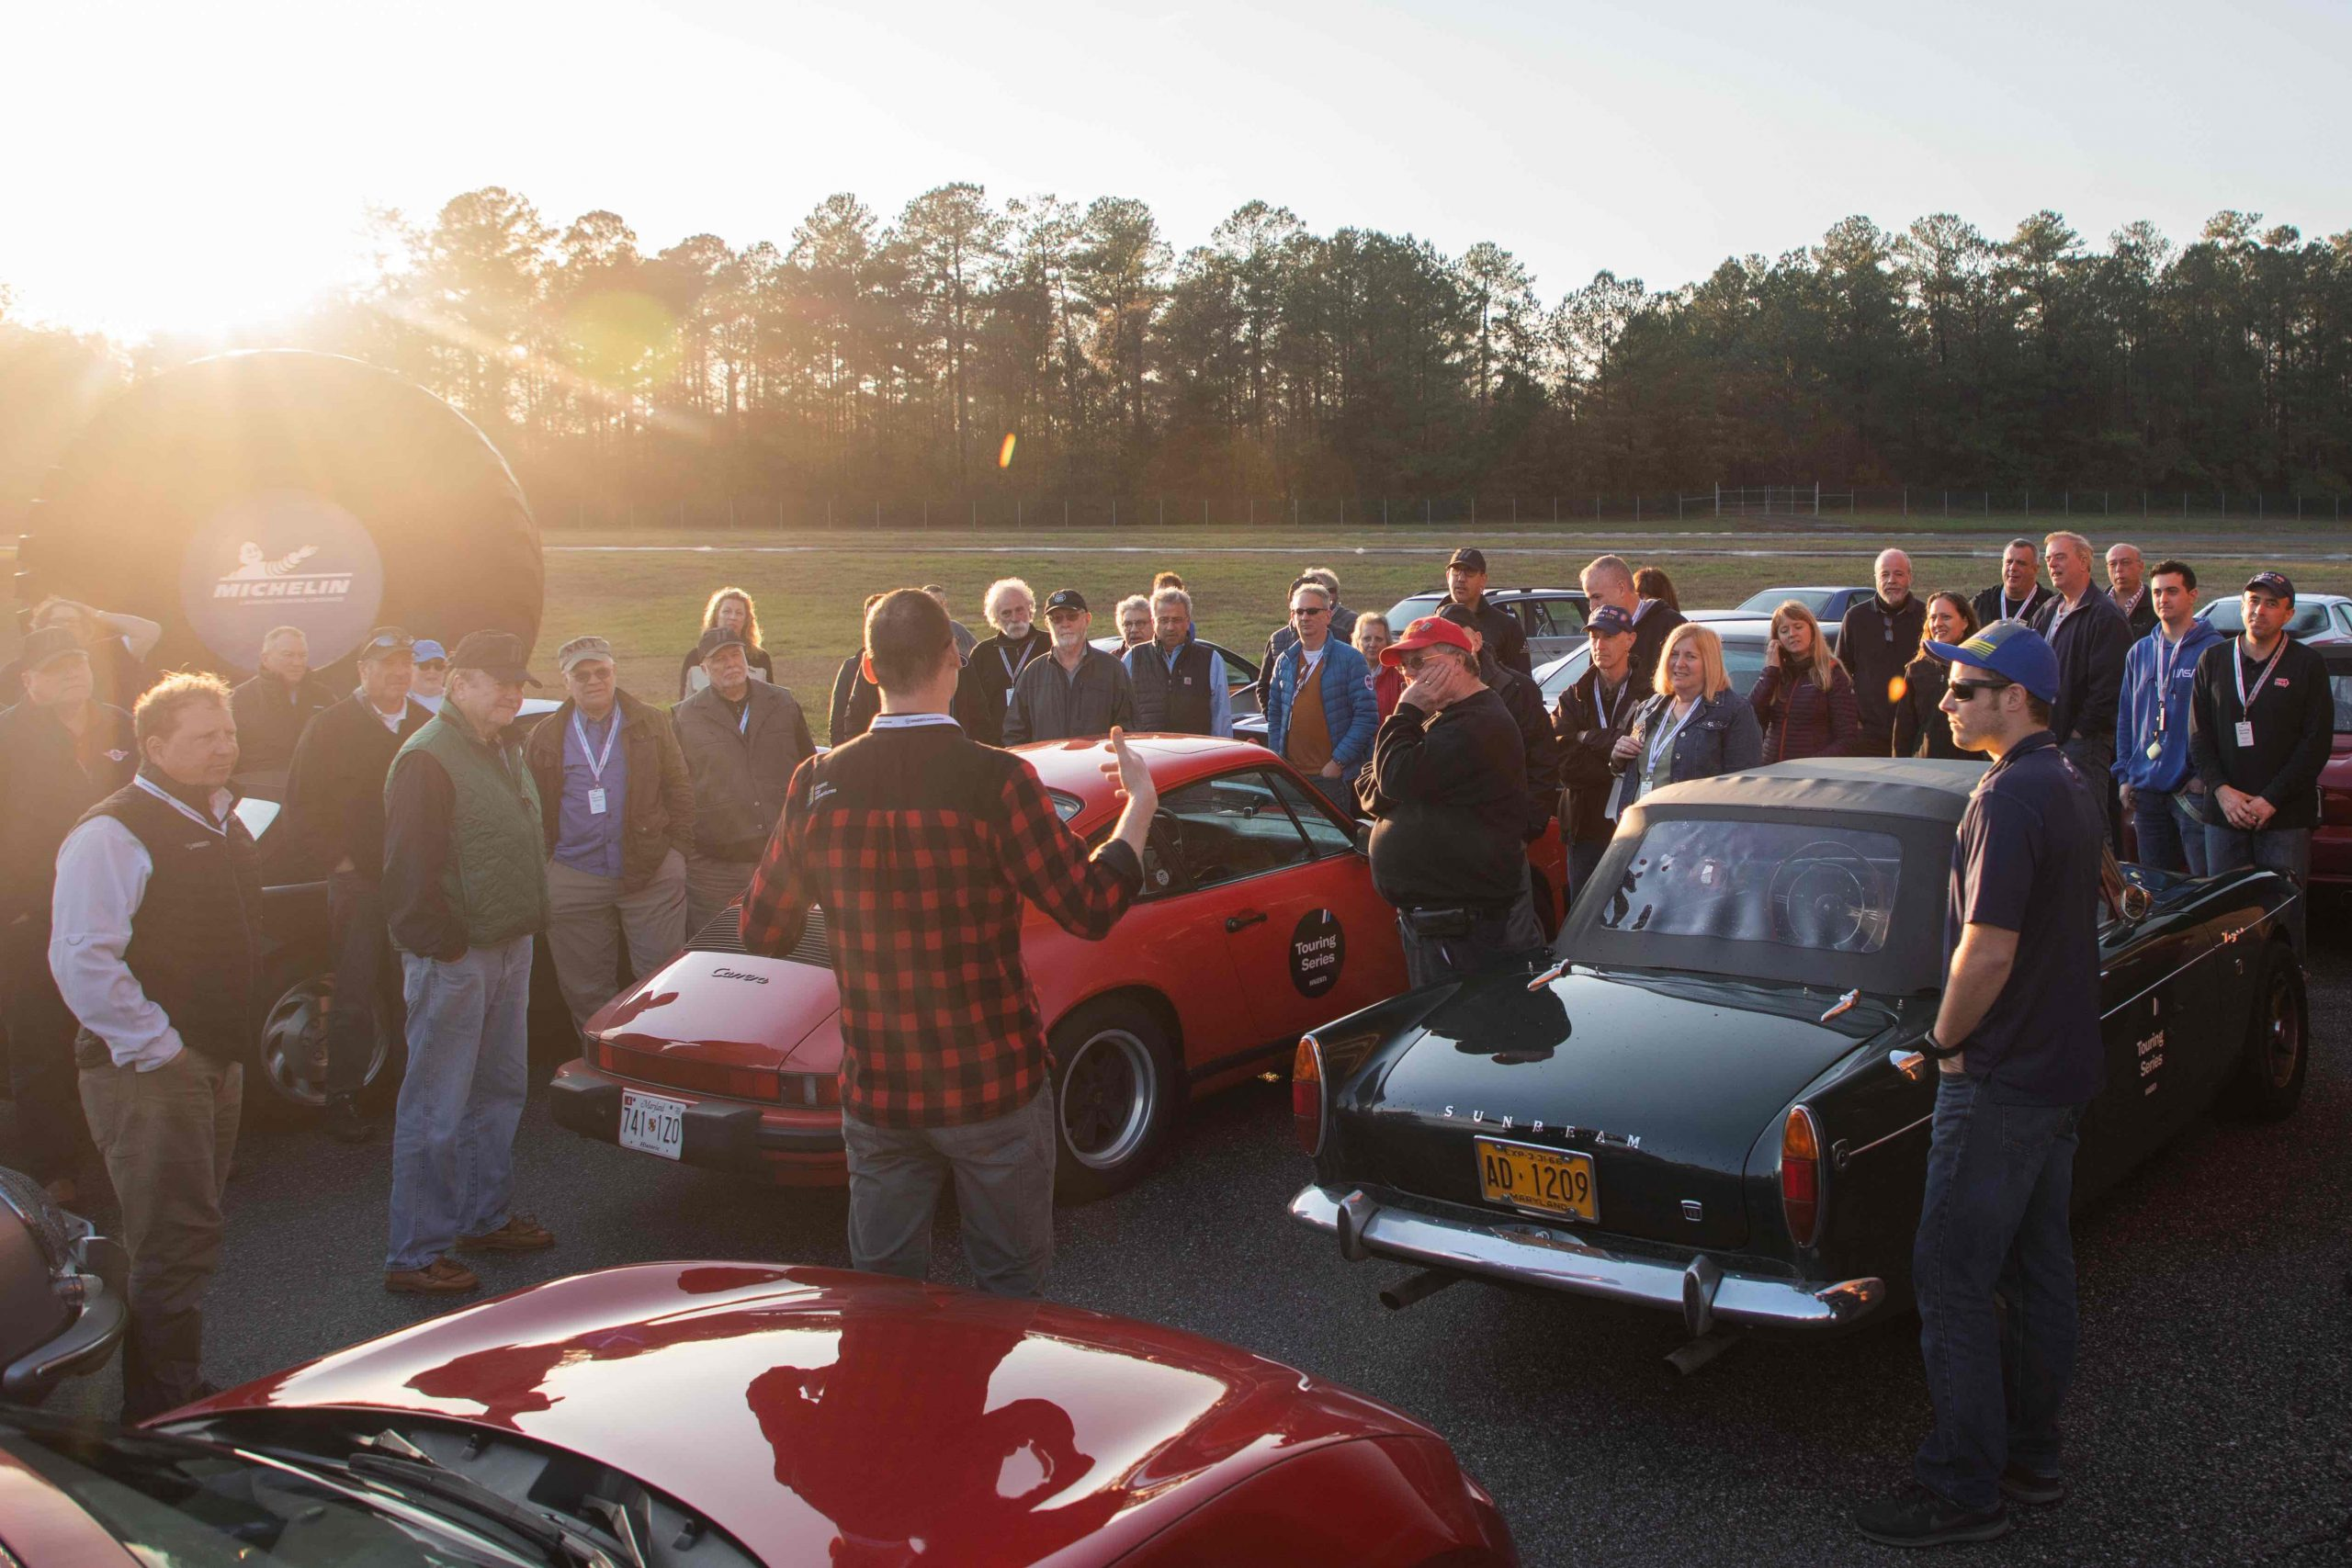 The classic vehicle community is thriving